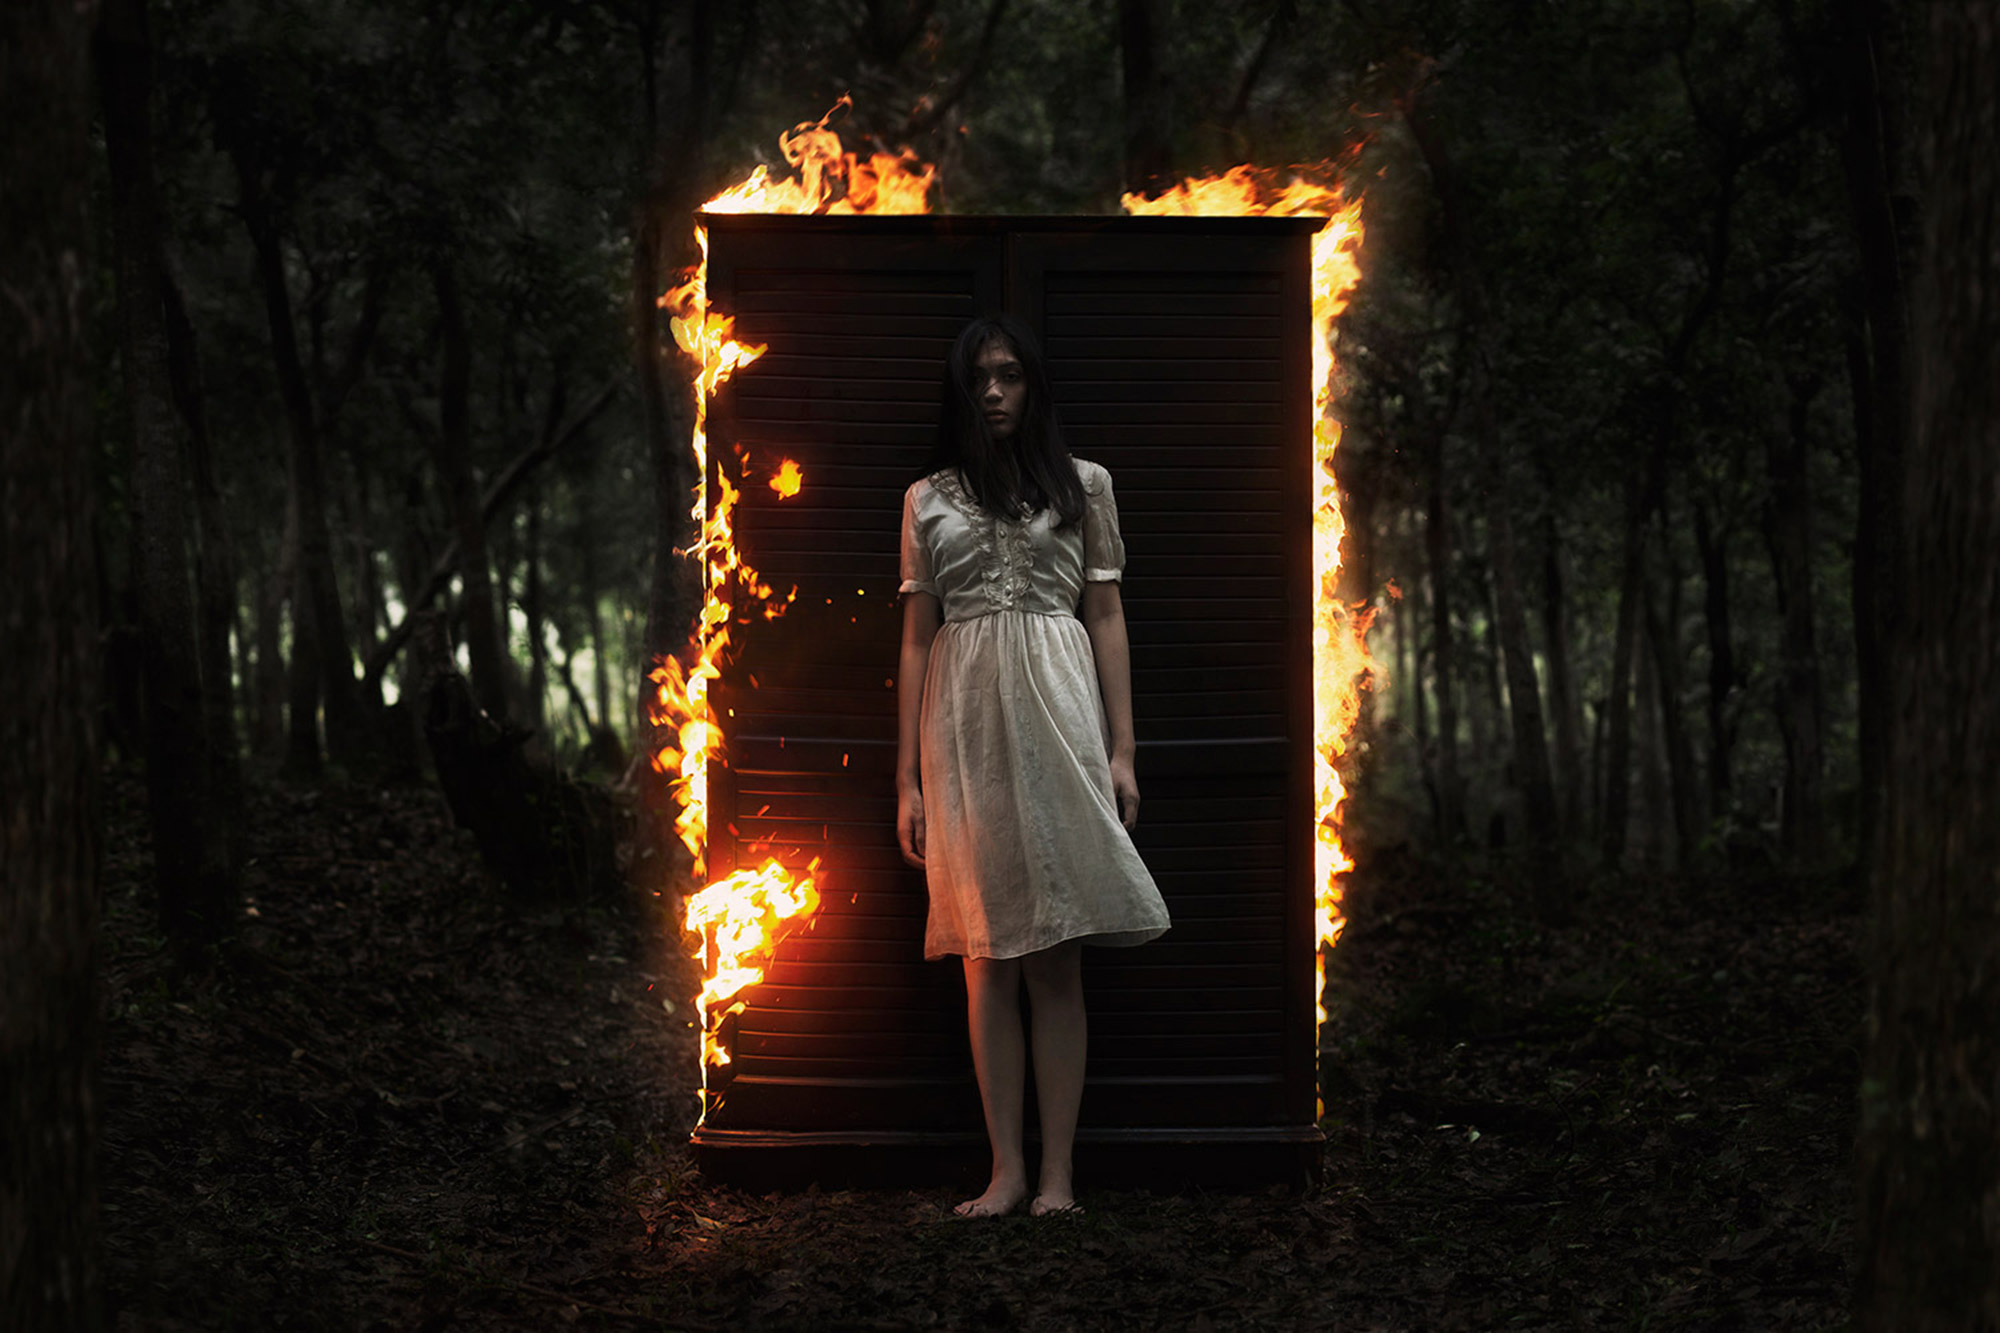 10 Conceptual Photographers Who Compose Visions of Surreal Darkness